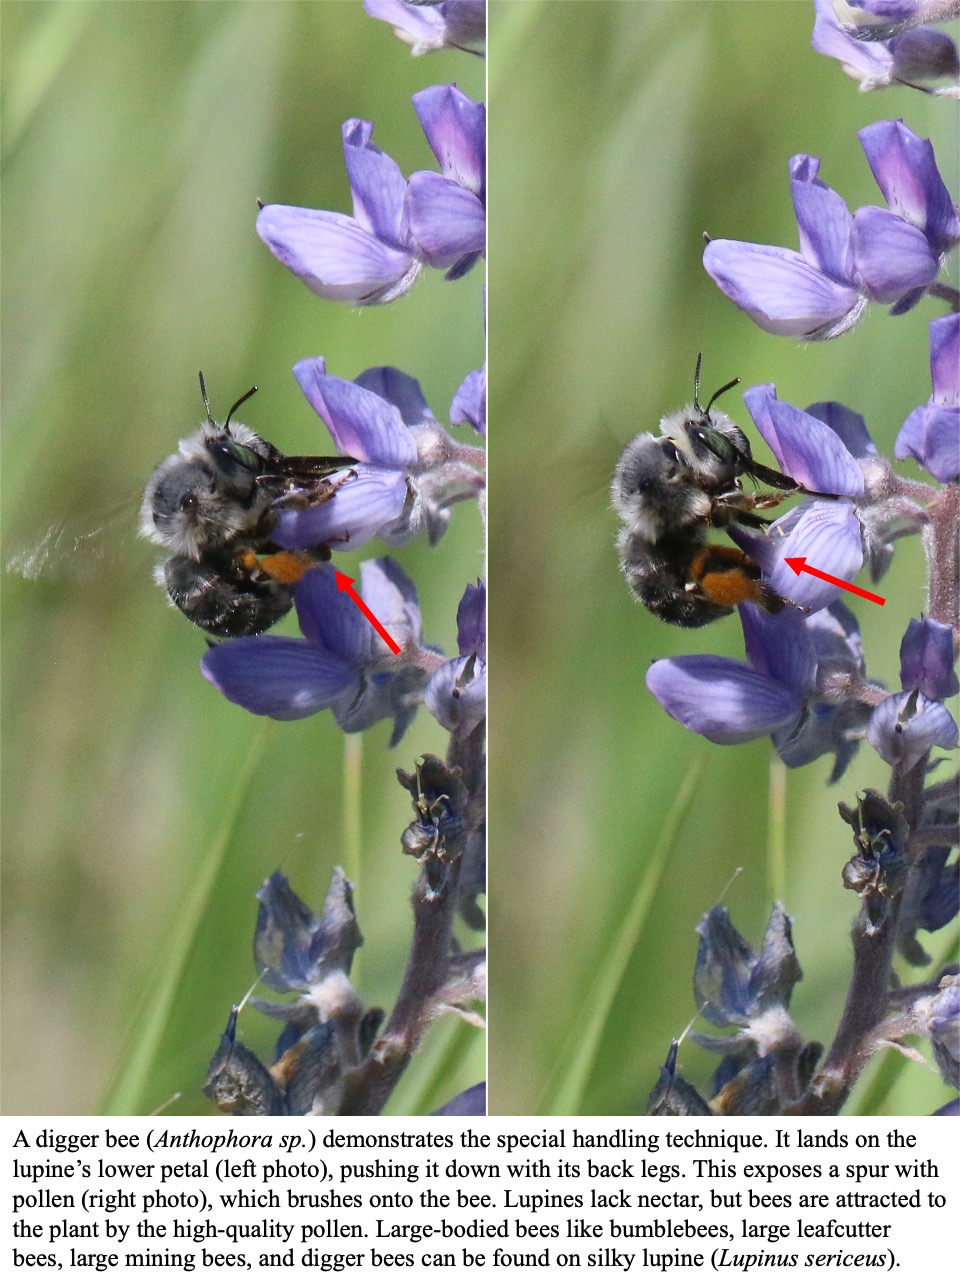 Large-bodied bees like bumblebees, large leafcutter bees, large mining bees, and digger bees can be found on silky lupine